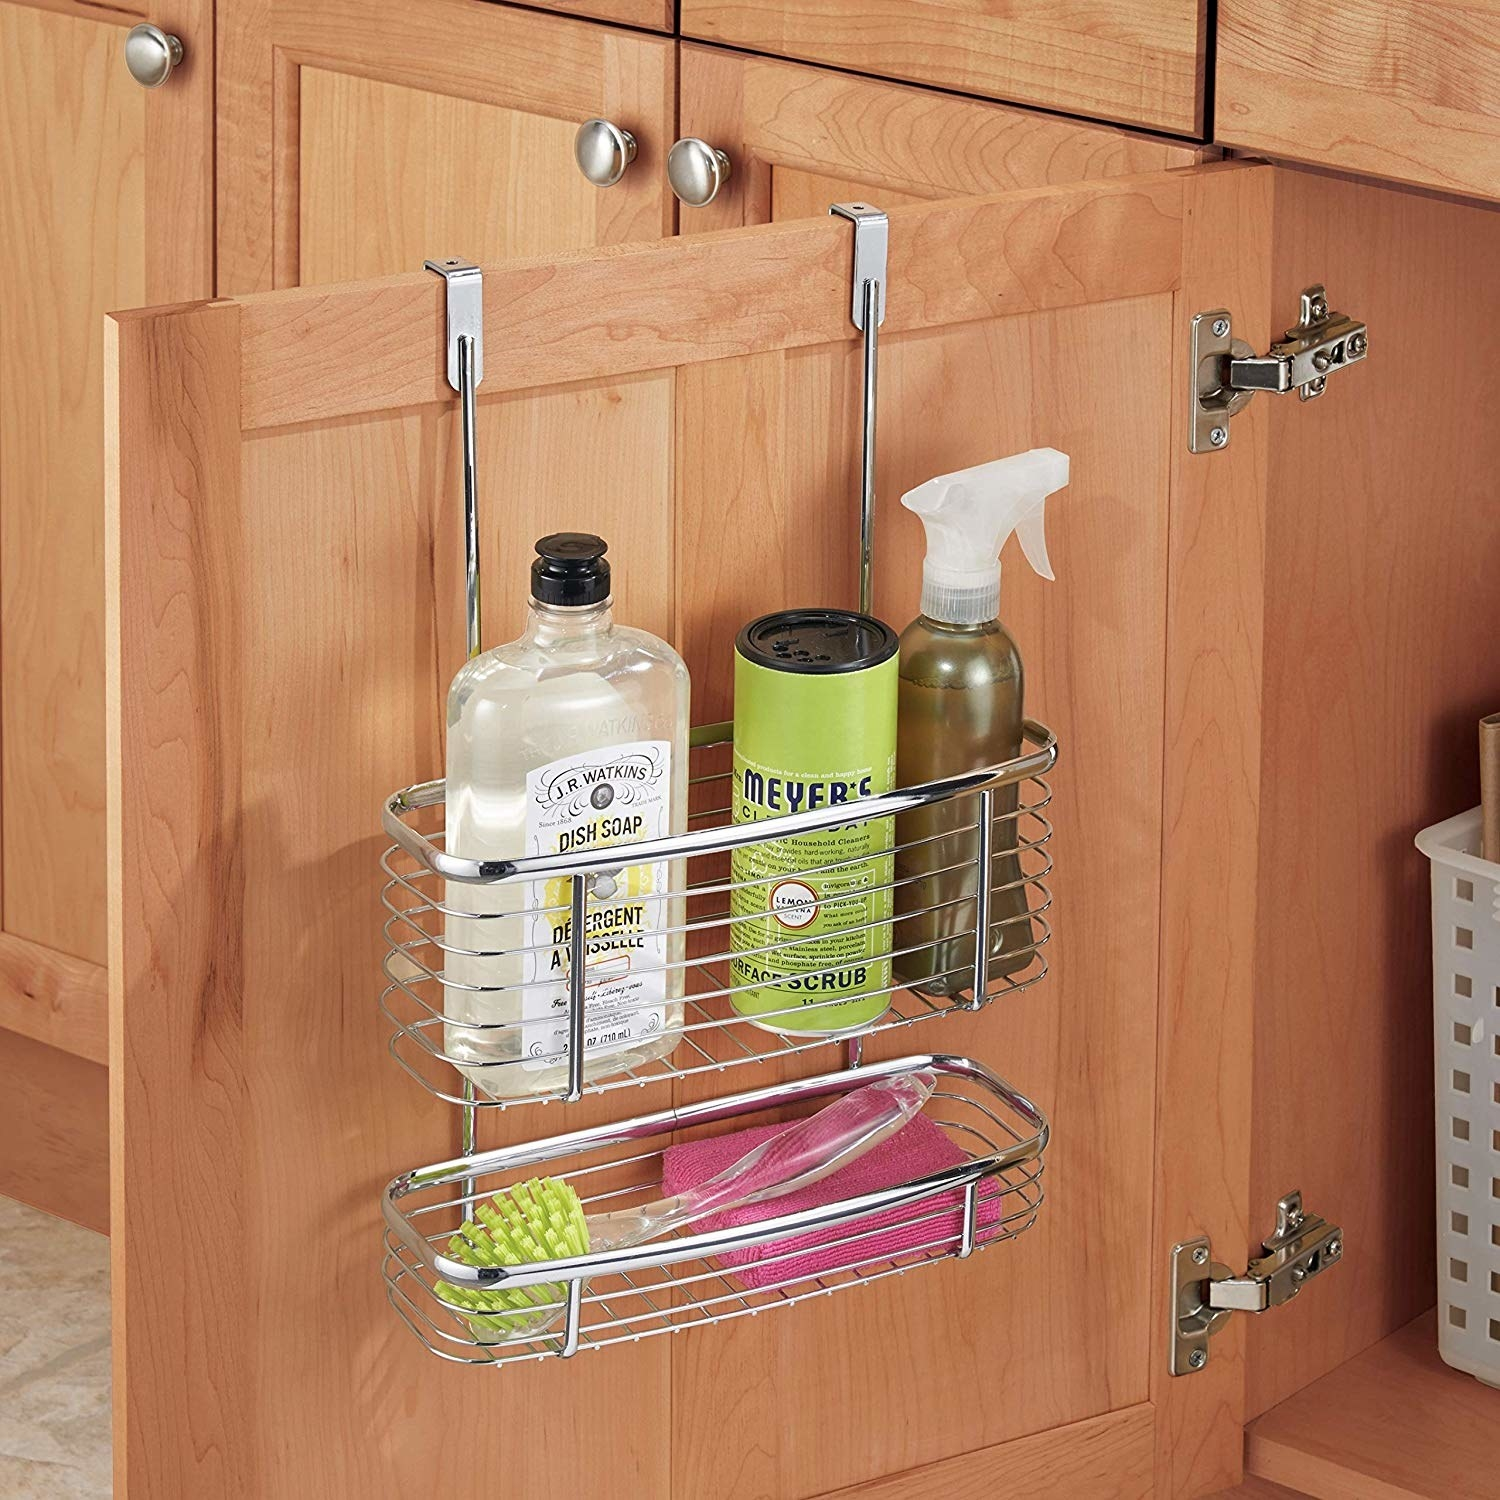 A metal organizer slipped over the top of a cabinet door